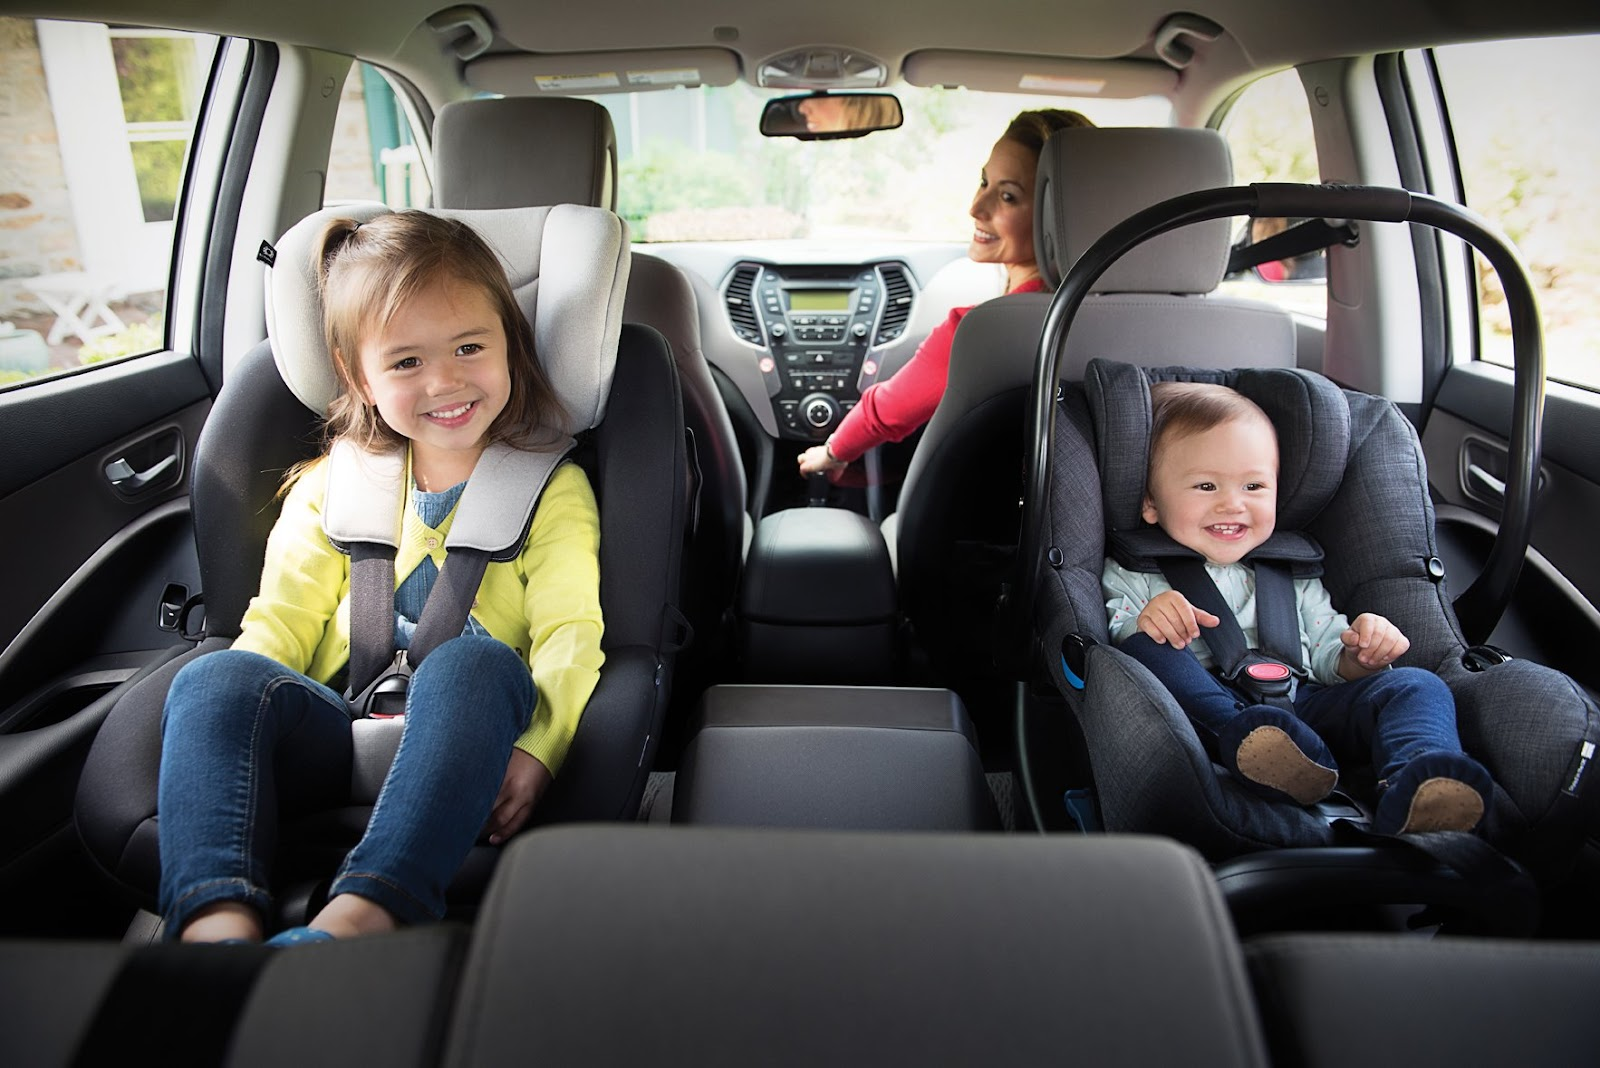 The best car seats for 3 year old kids